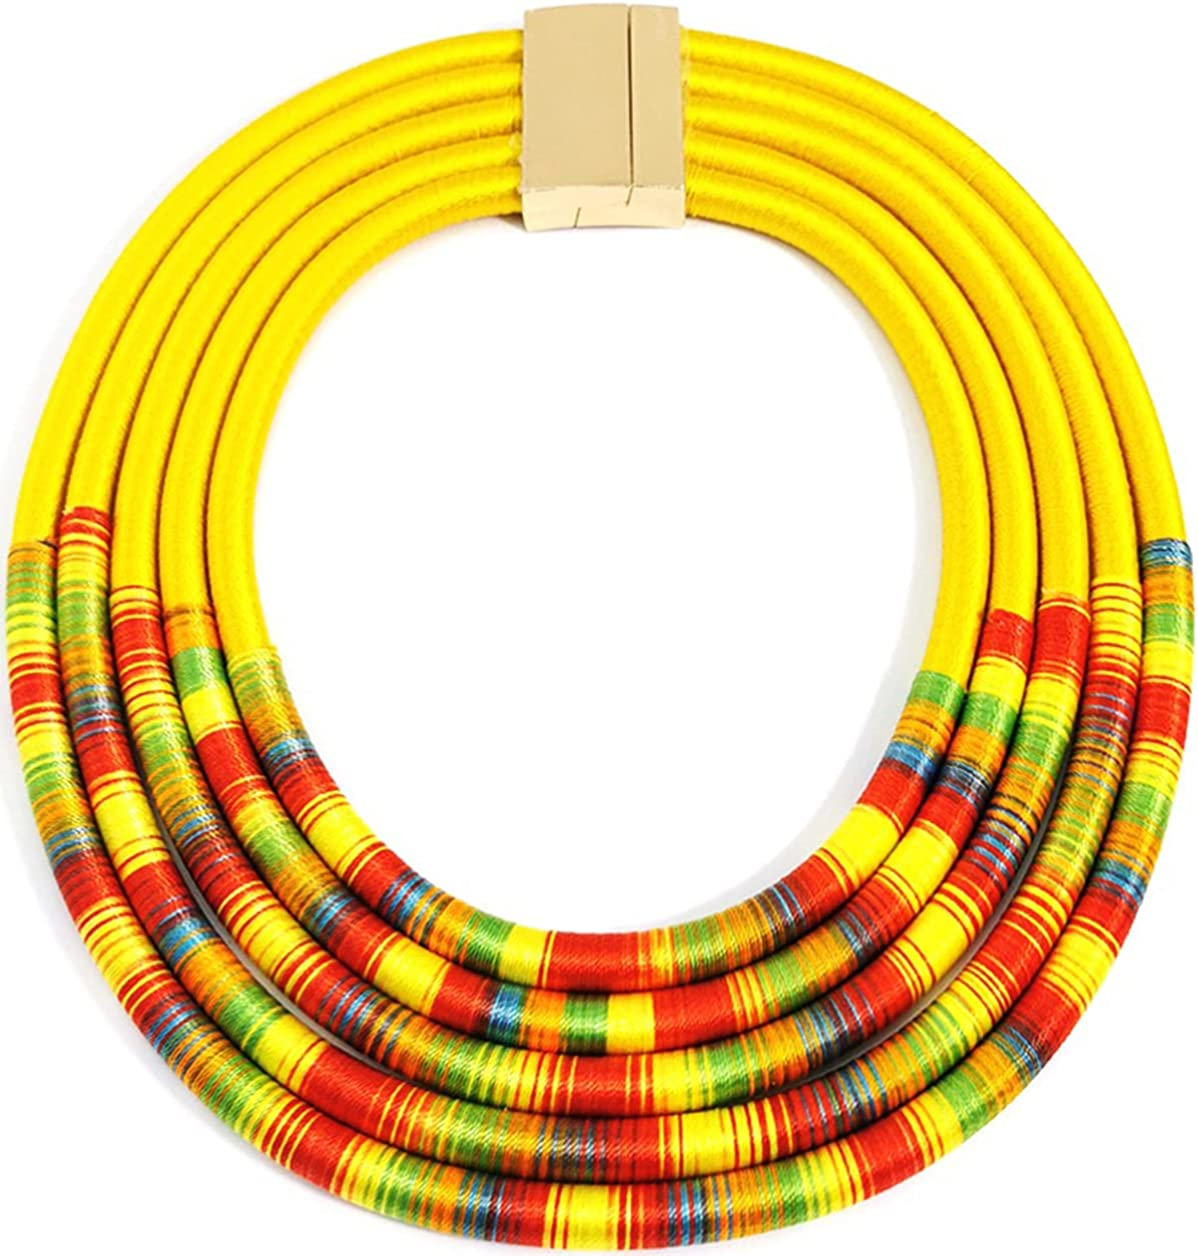 Aowaxbin African Tribal Choker Necklace Traditional Collar Necklace Colorful Rope Weave Bohemian Necklaces African Jewelry for Women